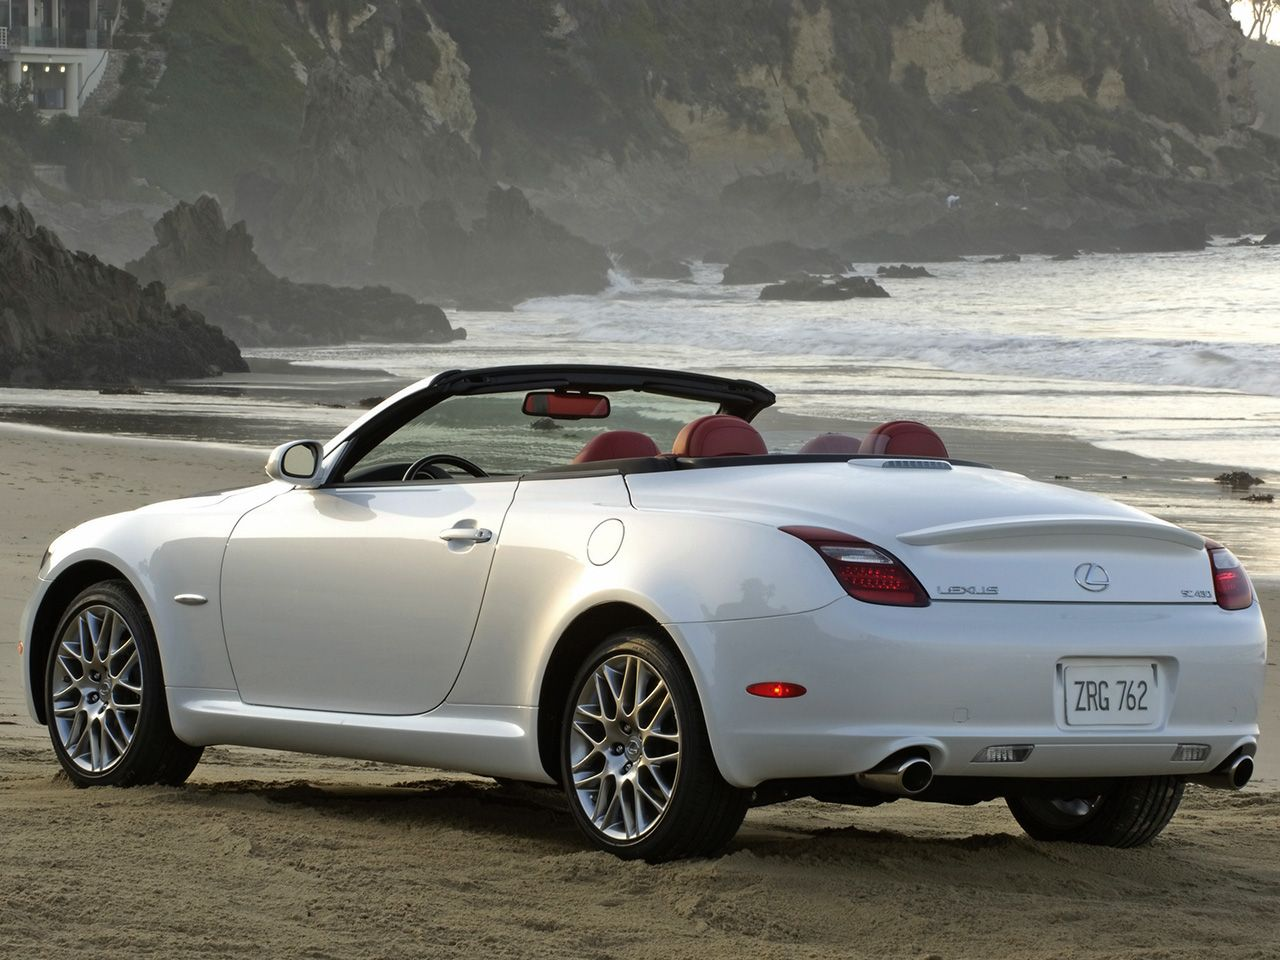 Lexus Hardtop Convertible favorite color would be black